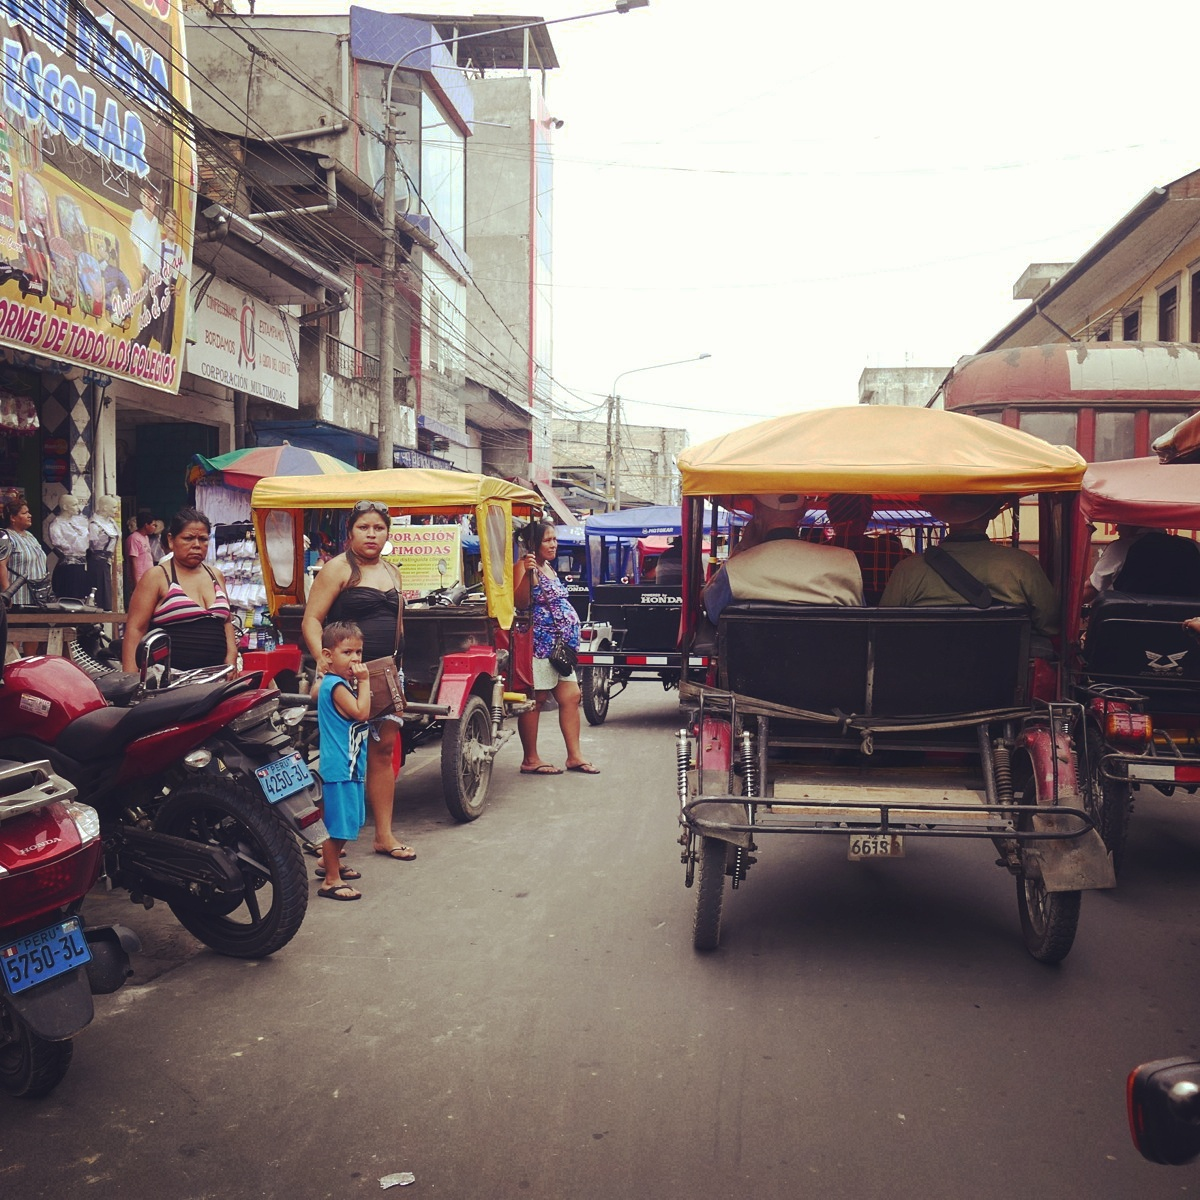 The streets of Iquitos, Peru are jammed with motorcycles, mototaxis, people, animals, and everything in between. Noah Strycker